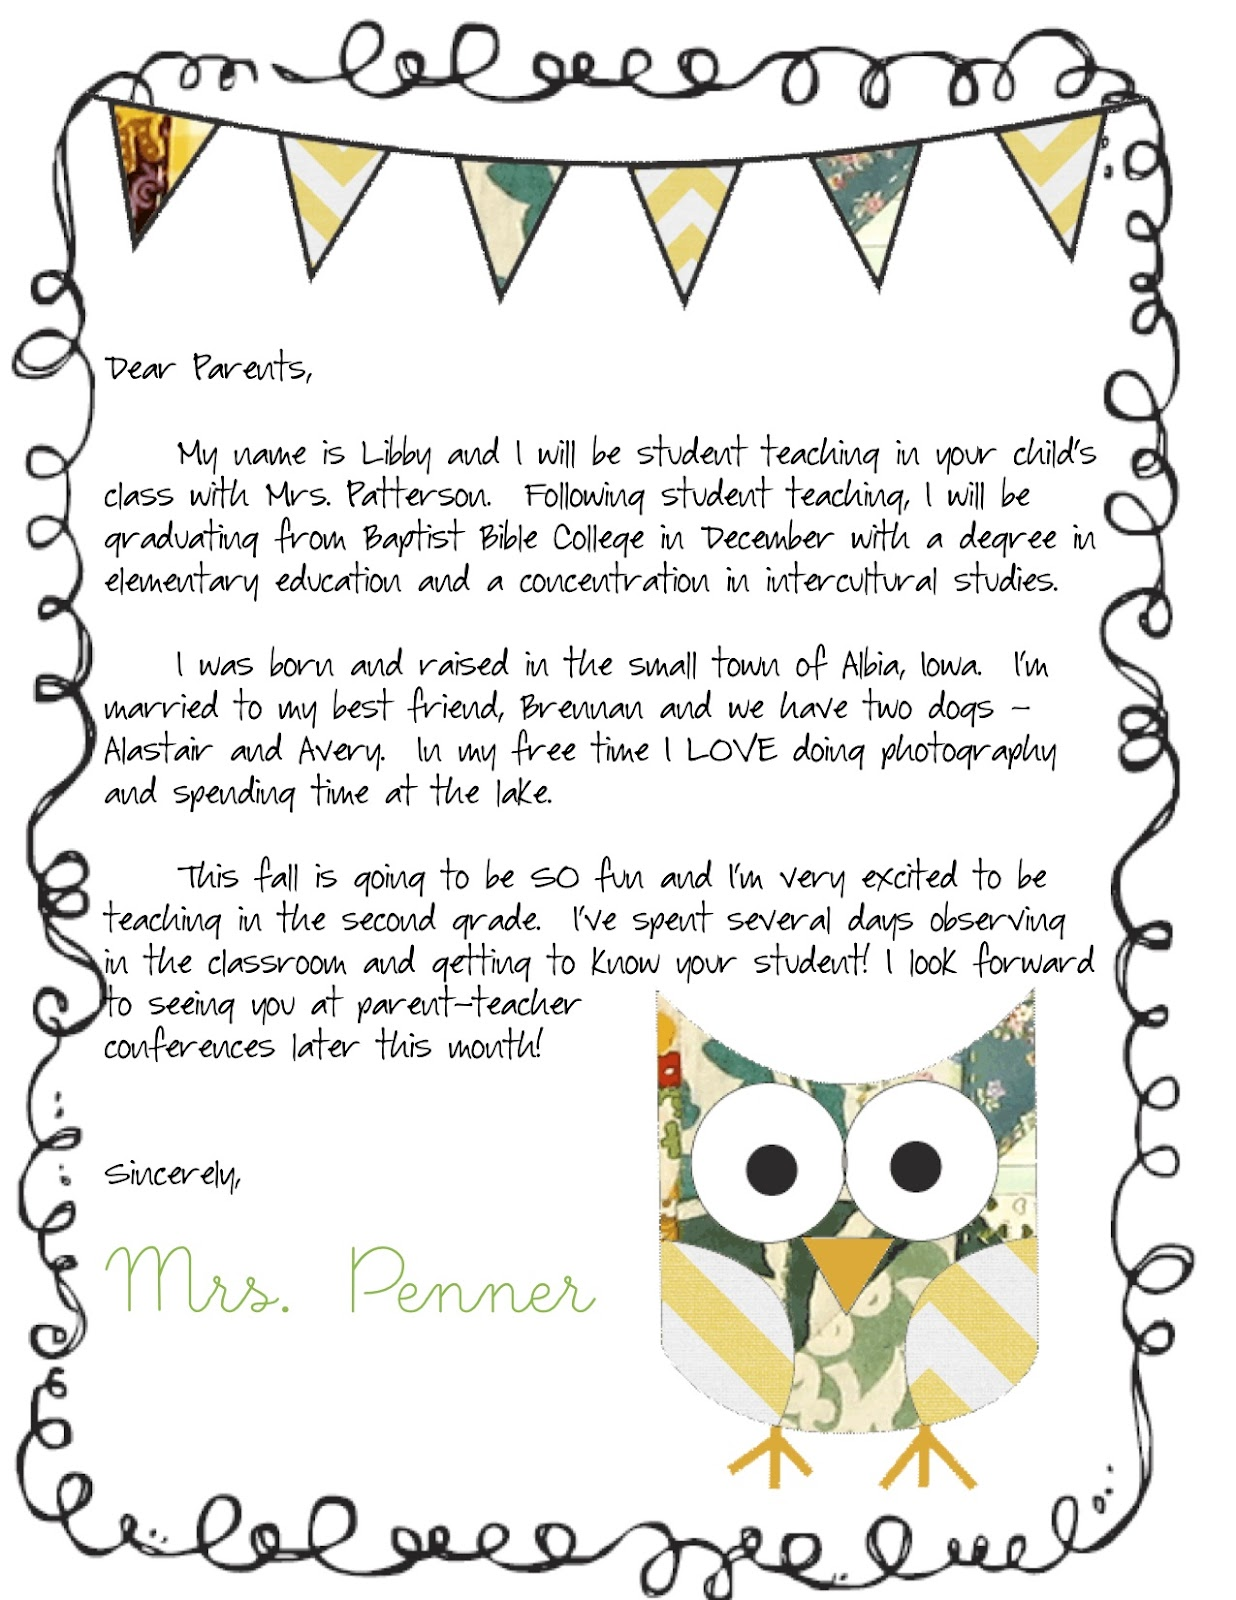 parent letter from teacher template - life of a someday teacher